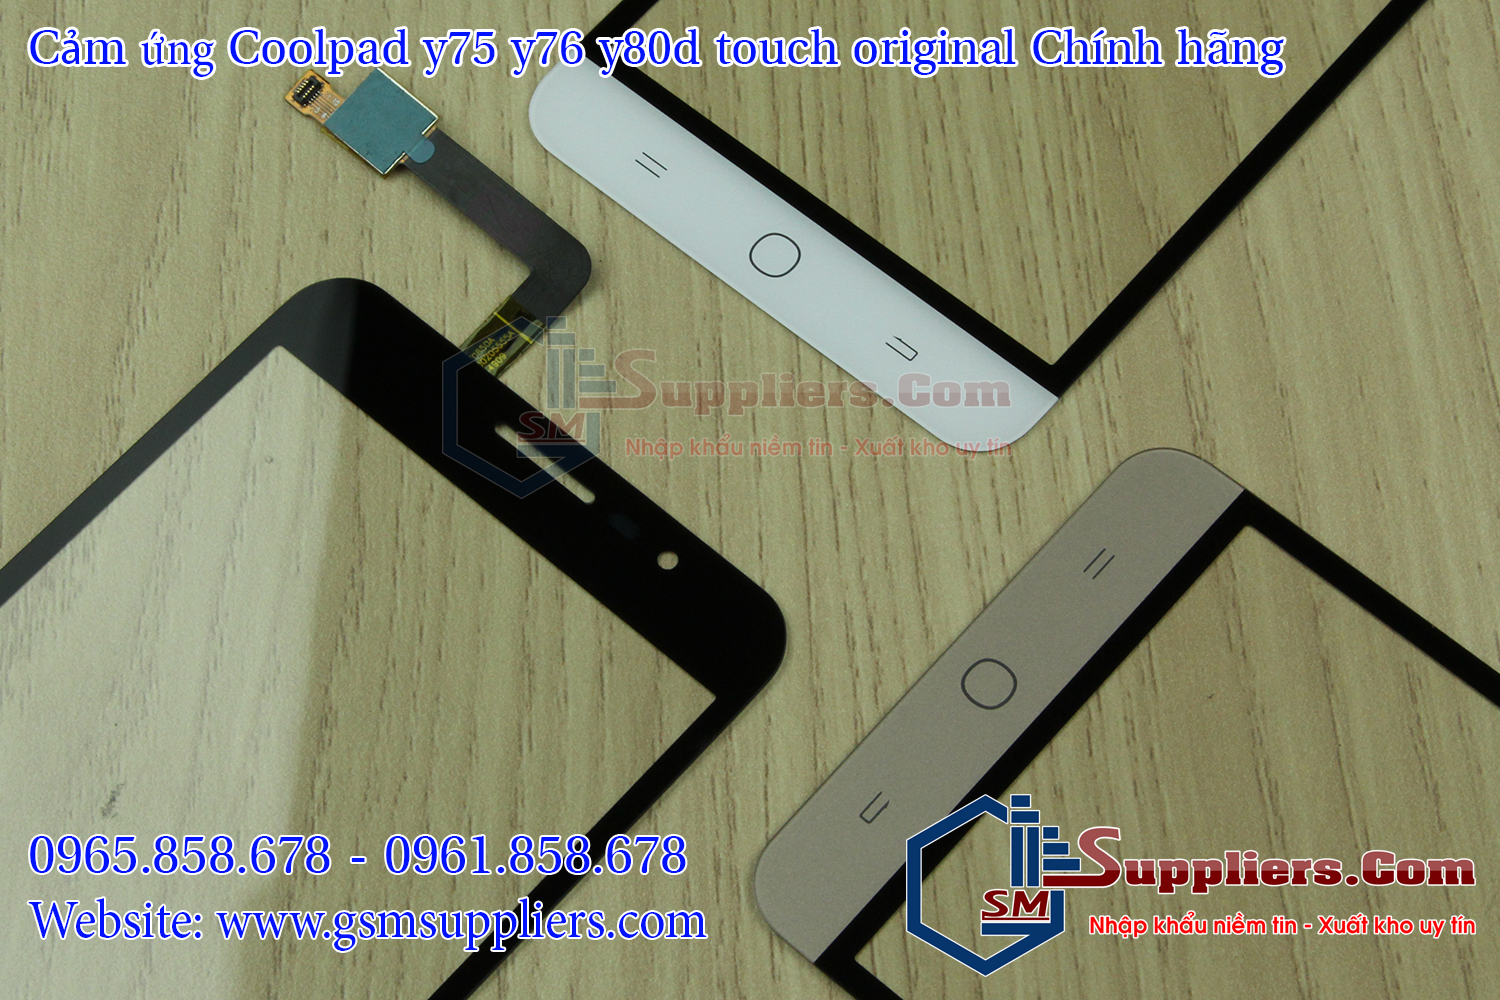 cam ung coolpad y75 y76 y80d touch original chinh hang 0